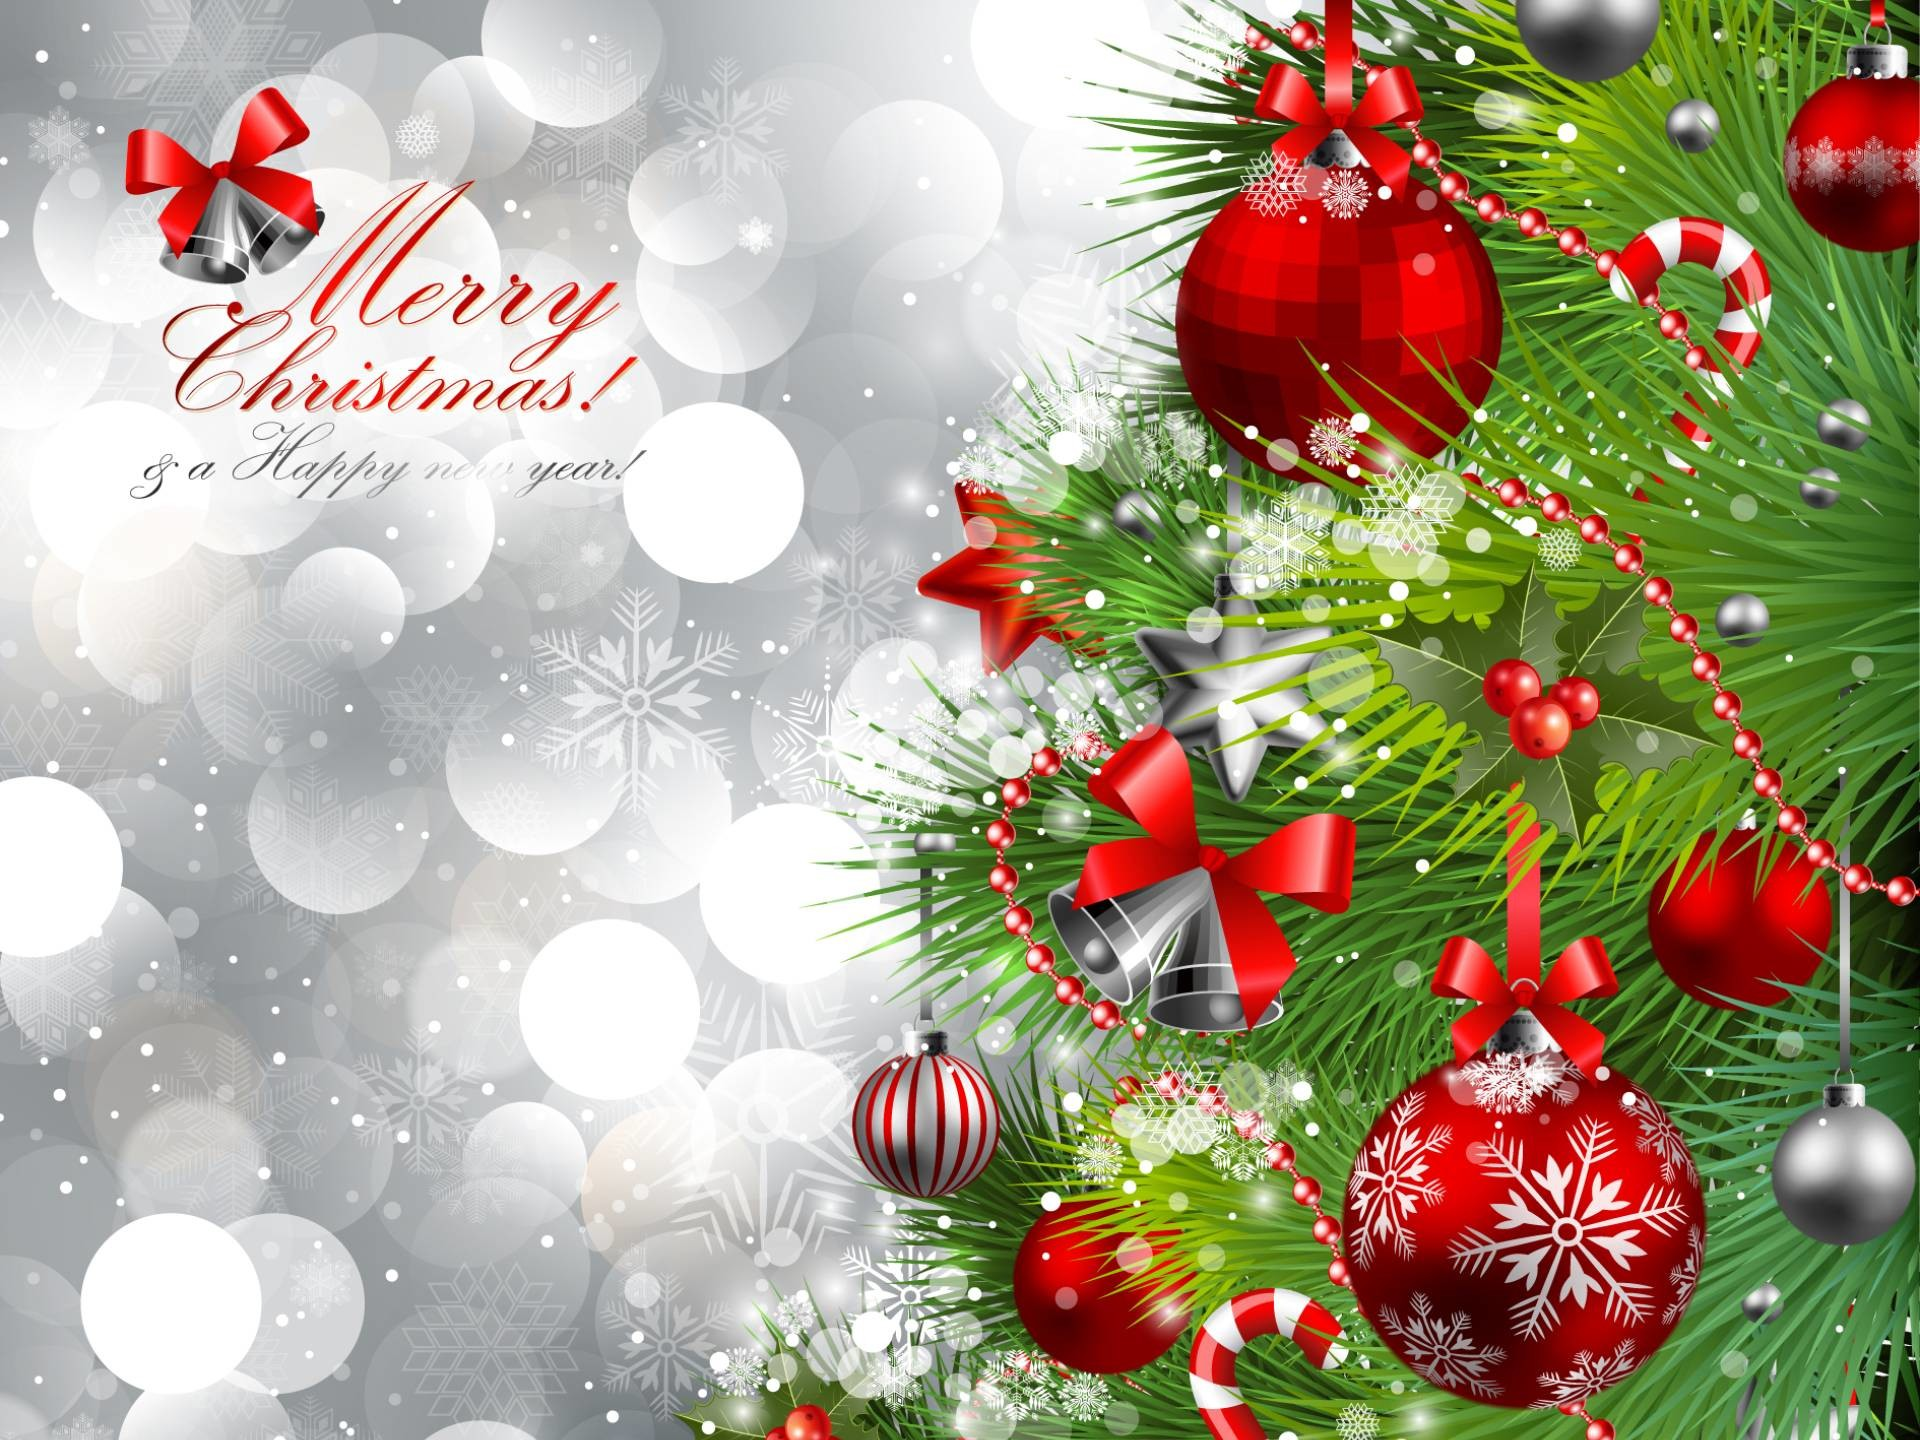 desktop christmas backgrounds (57+ pictures)